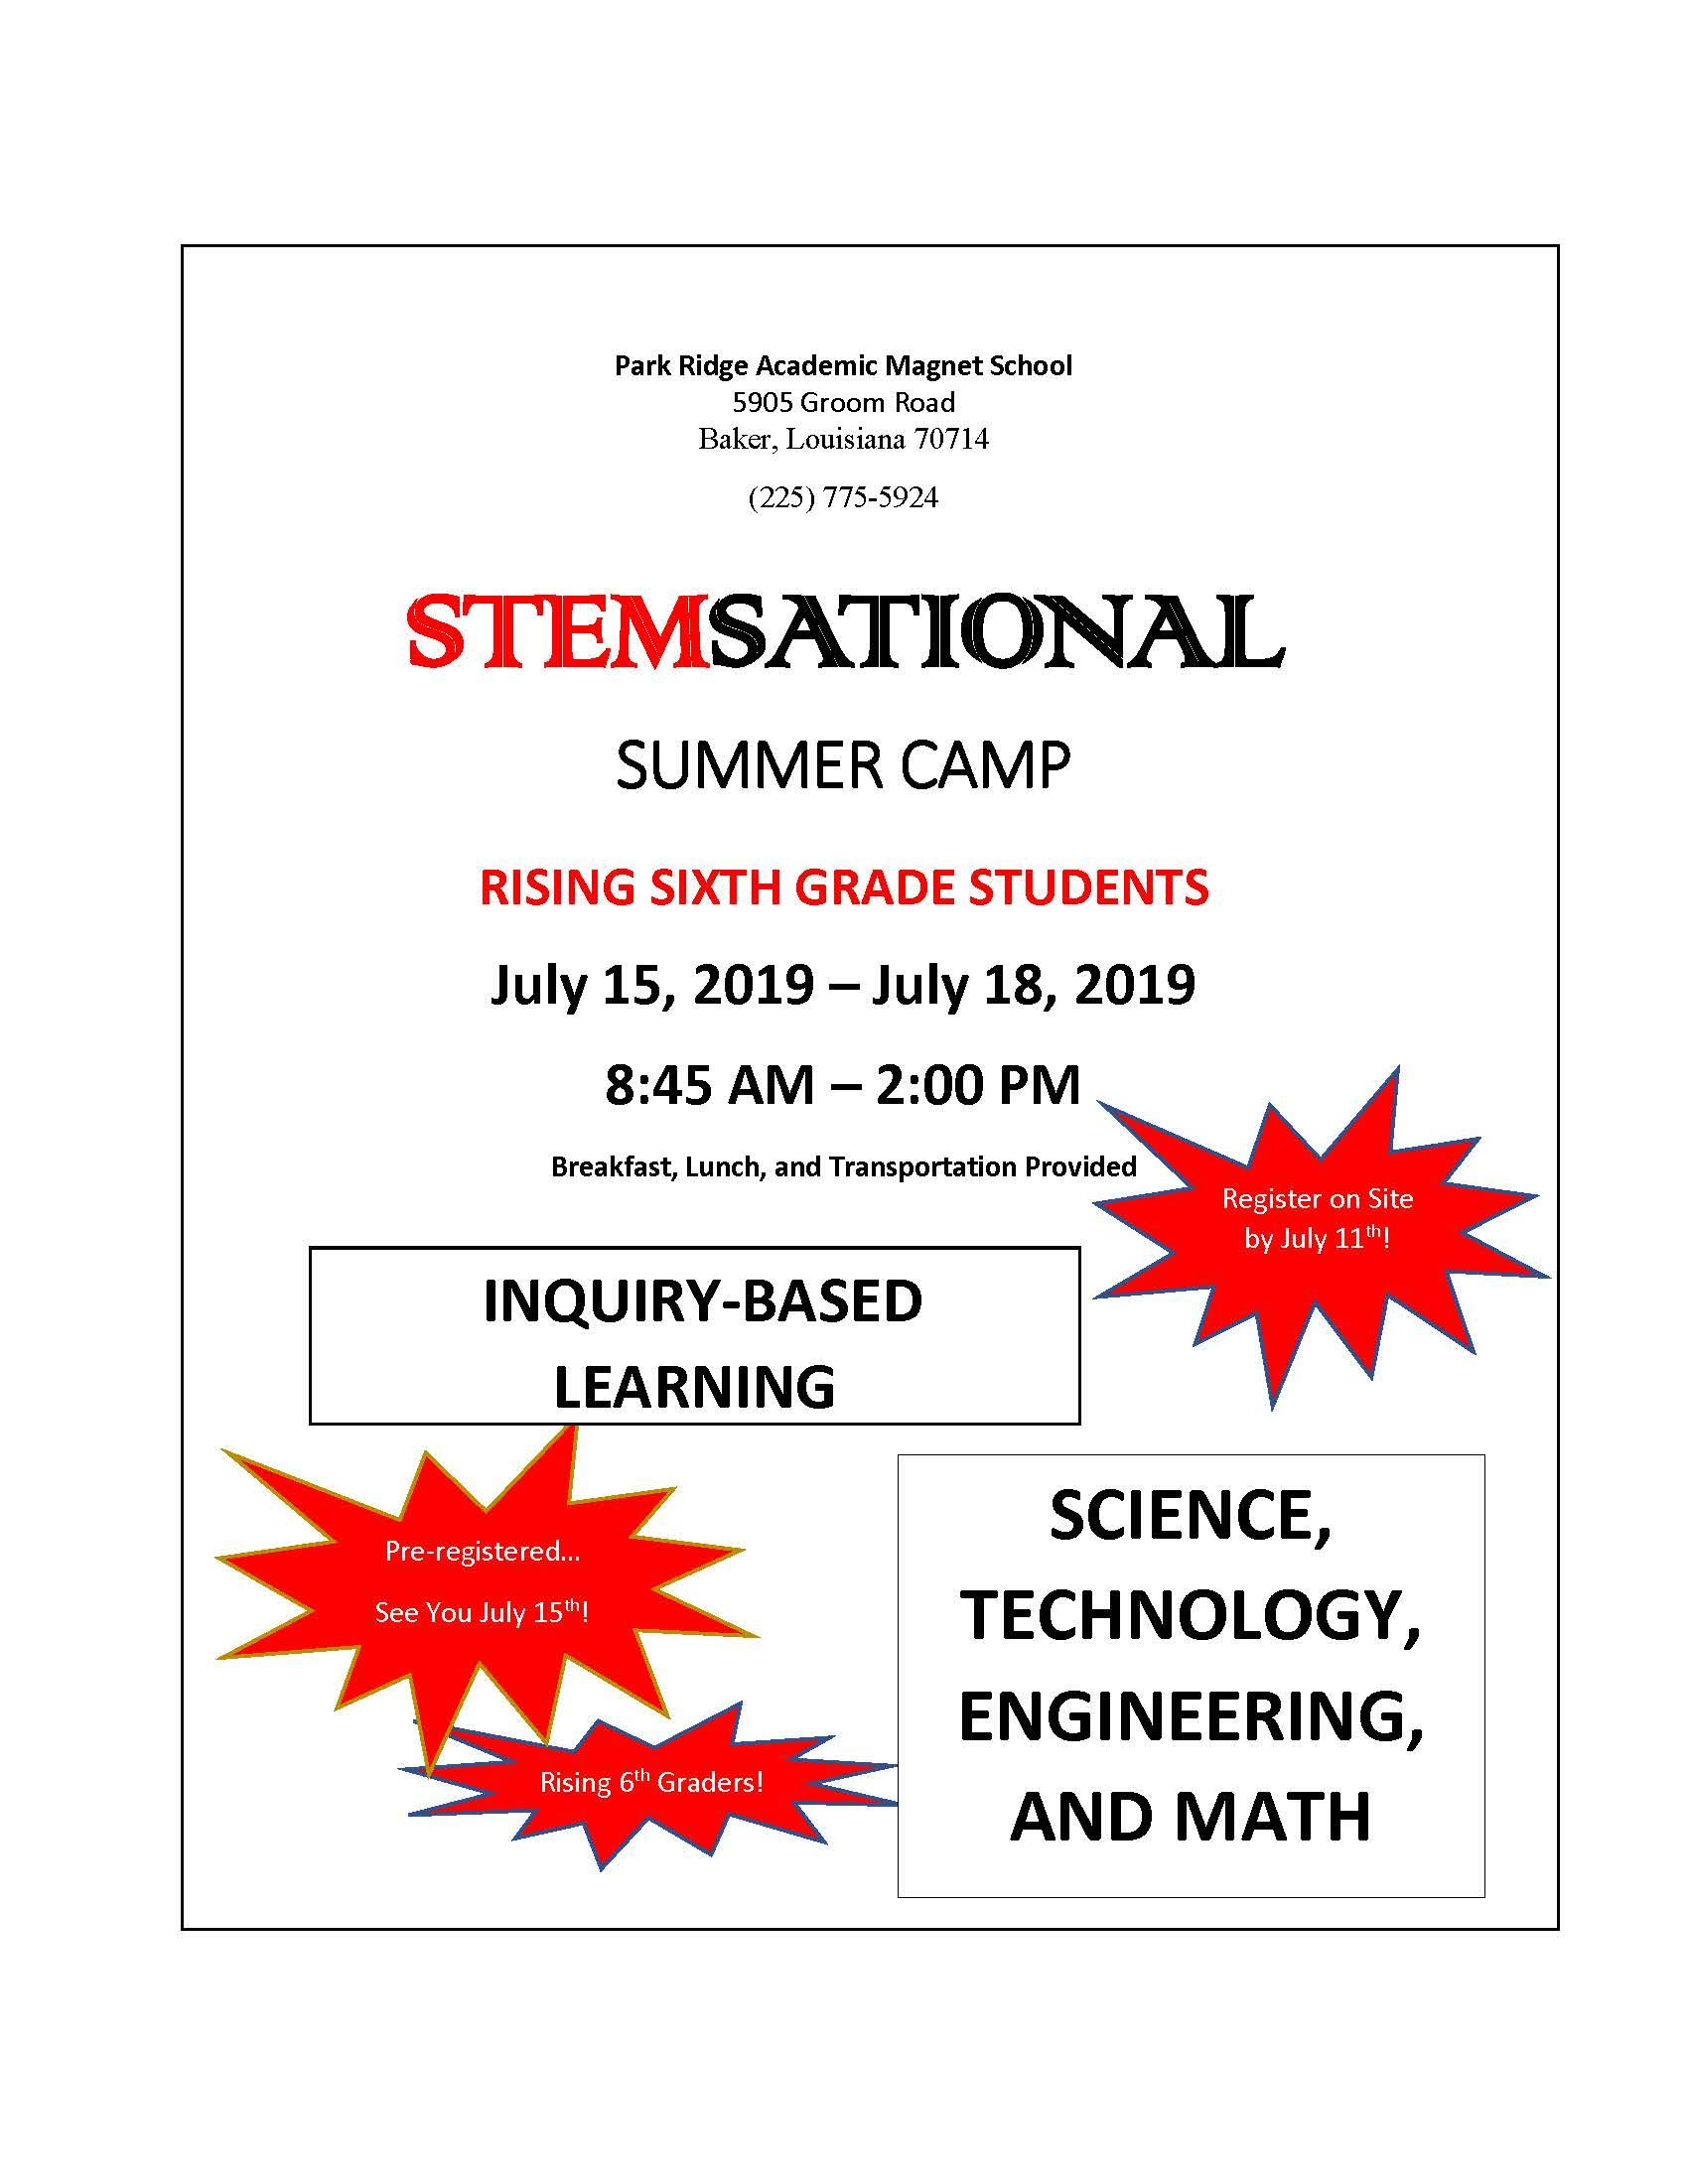 A graphic of the poster advertising the 6th grade STEM camp at Park Ridge